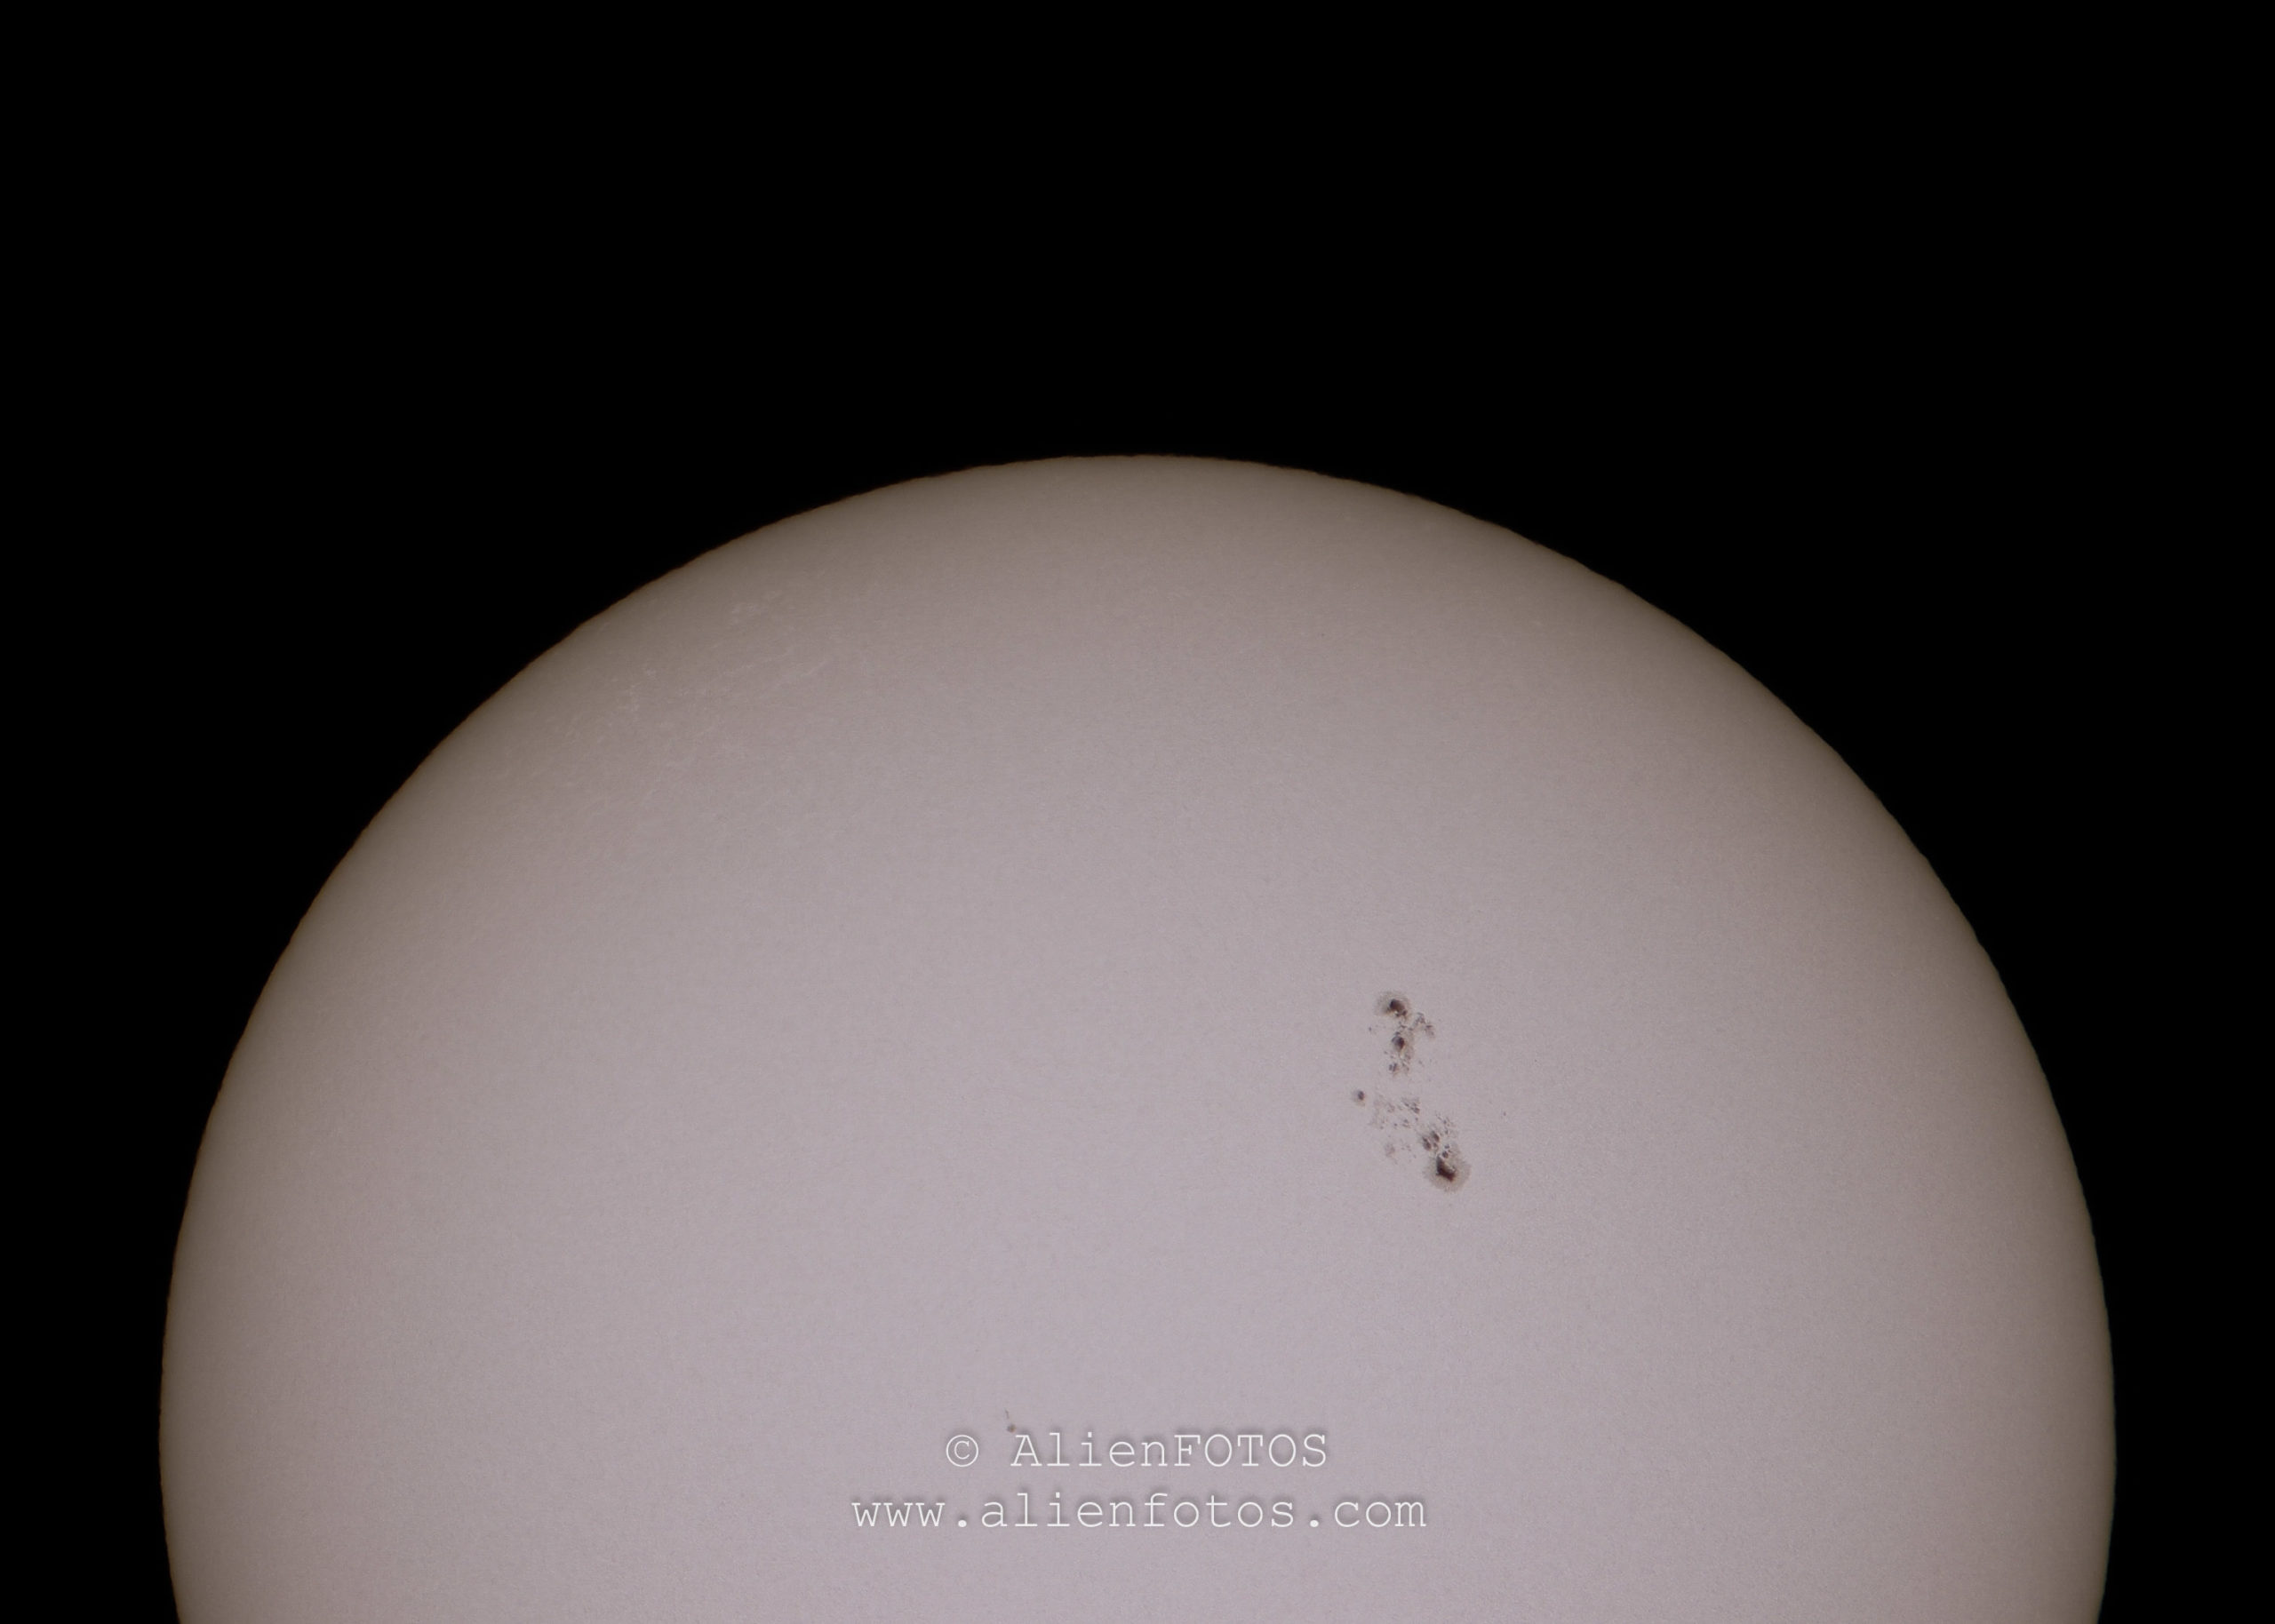 Sun 5919 (Sun with sunspots)